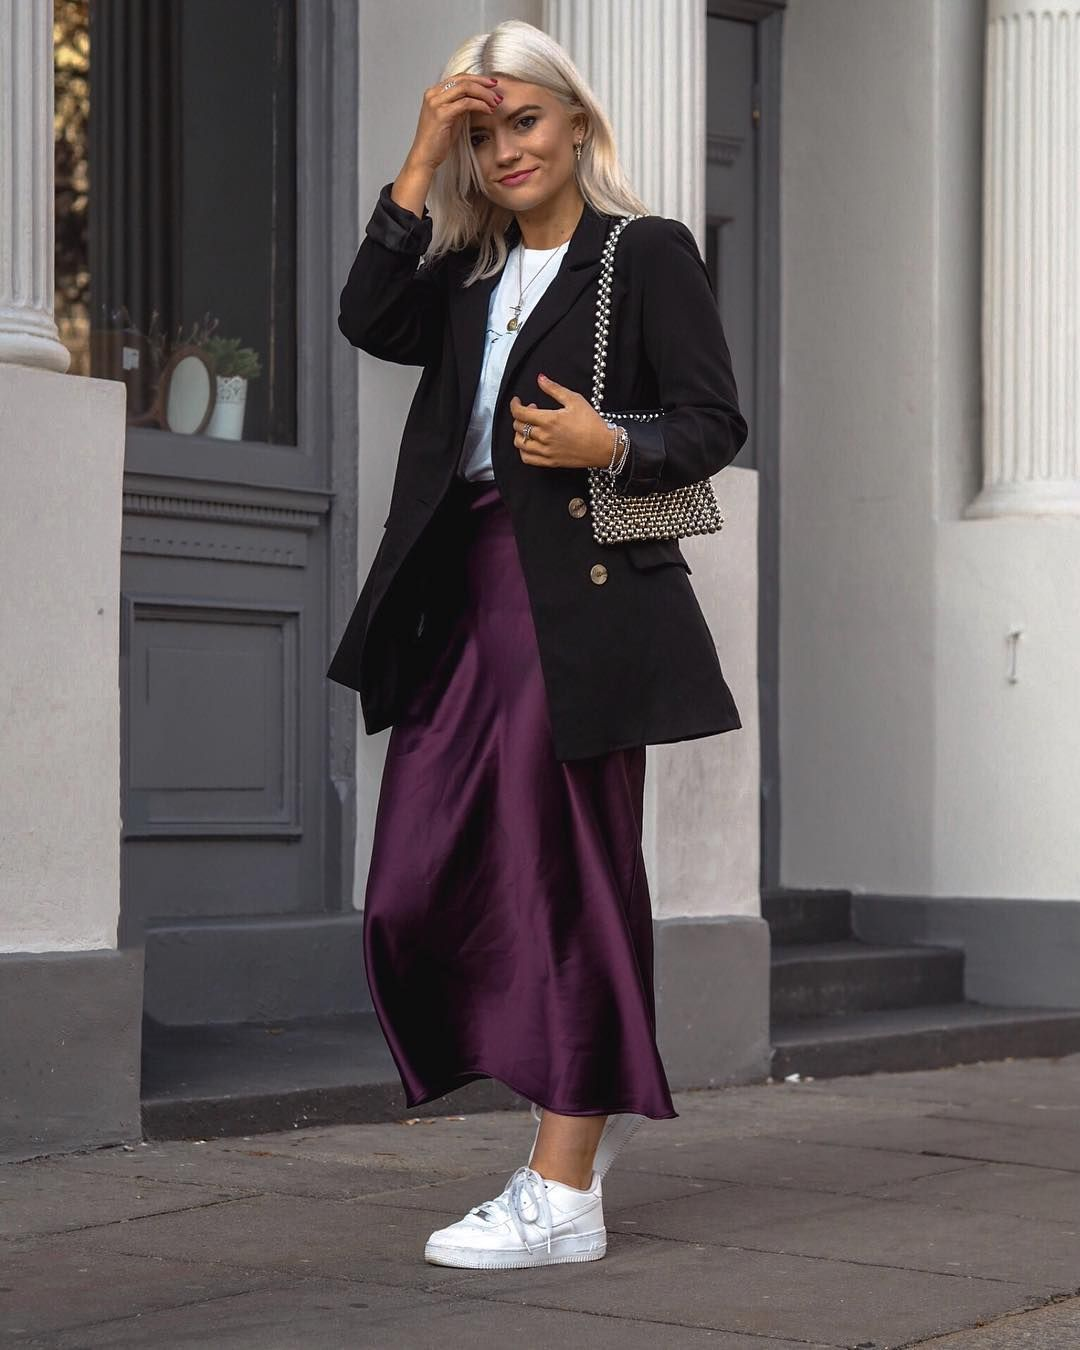 97bf3c472 SHOPUPP Purple Topshop bias cut long skirt satin Black double breasted  blazer White T-shirt trainers outfit